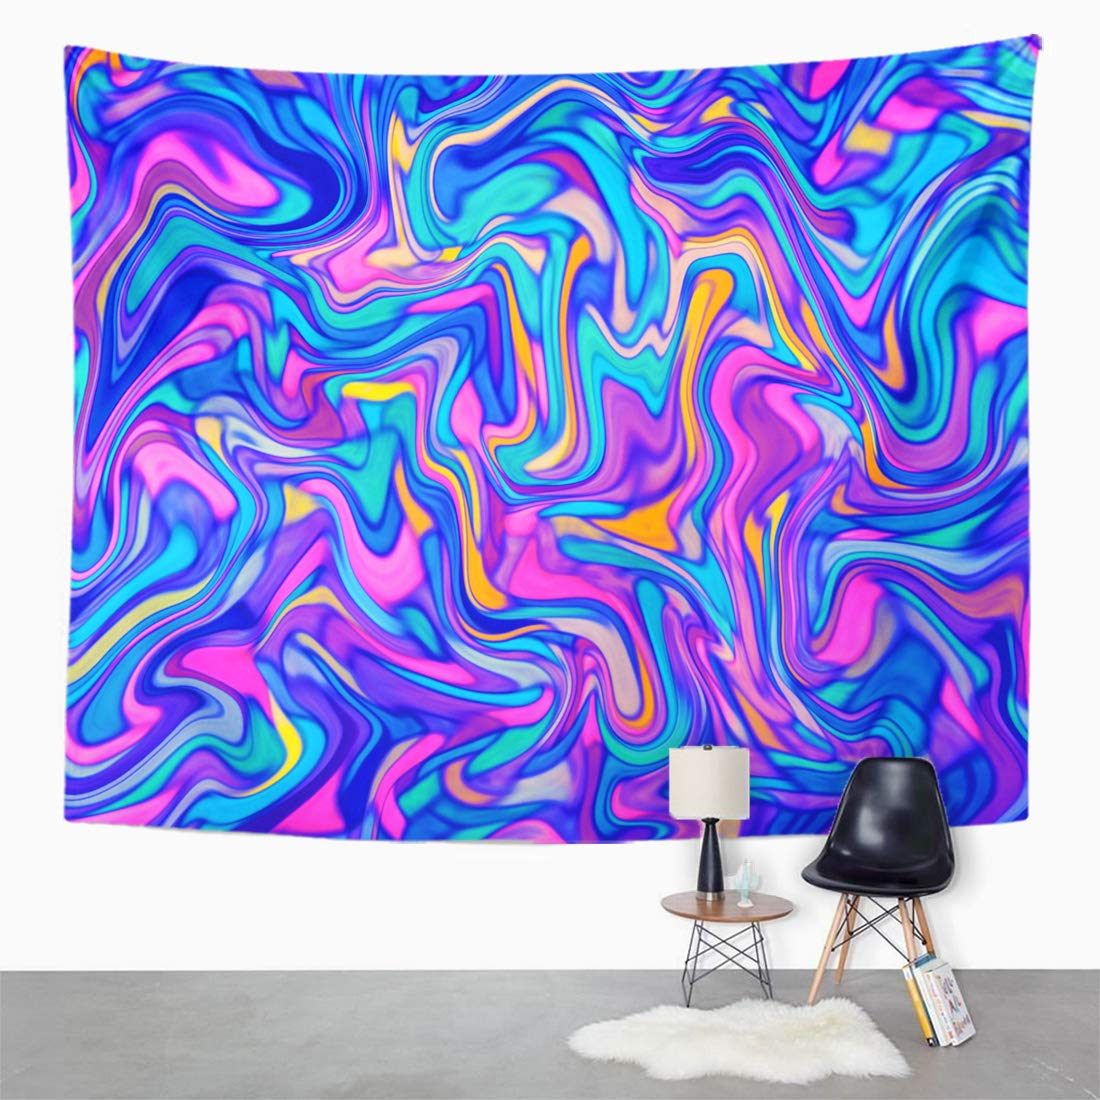 Zealgned Purple And Blue Color Palette Marbling Marble Abstract Wall Art Hanging Tapestry Home Decor For Living Room Bedroom Dorm 60x80 Inch Walmart Com Walmart Com